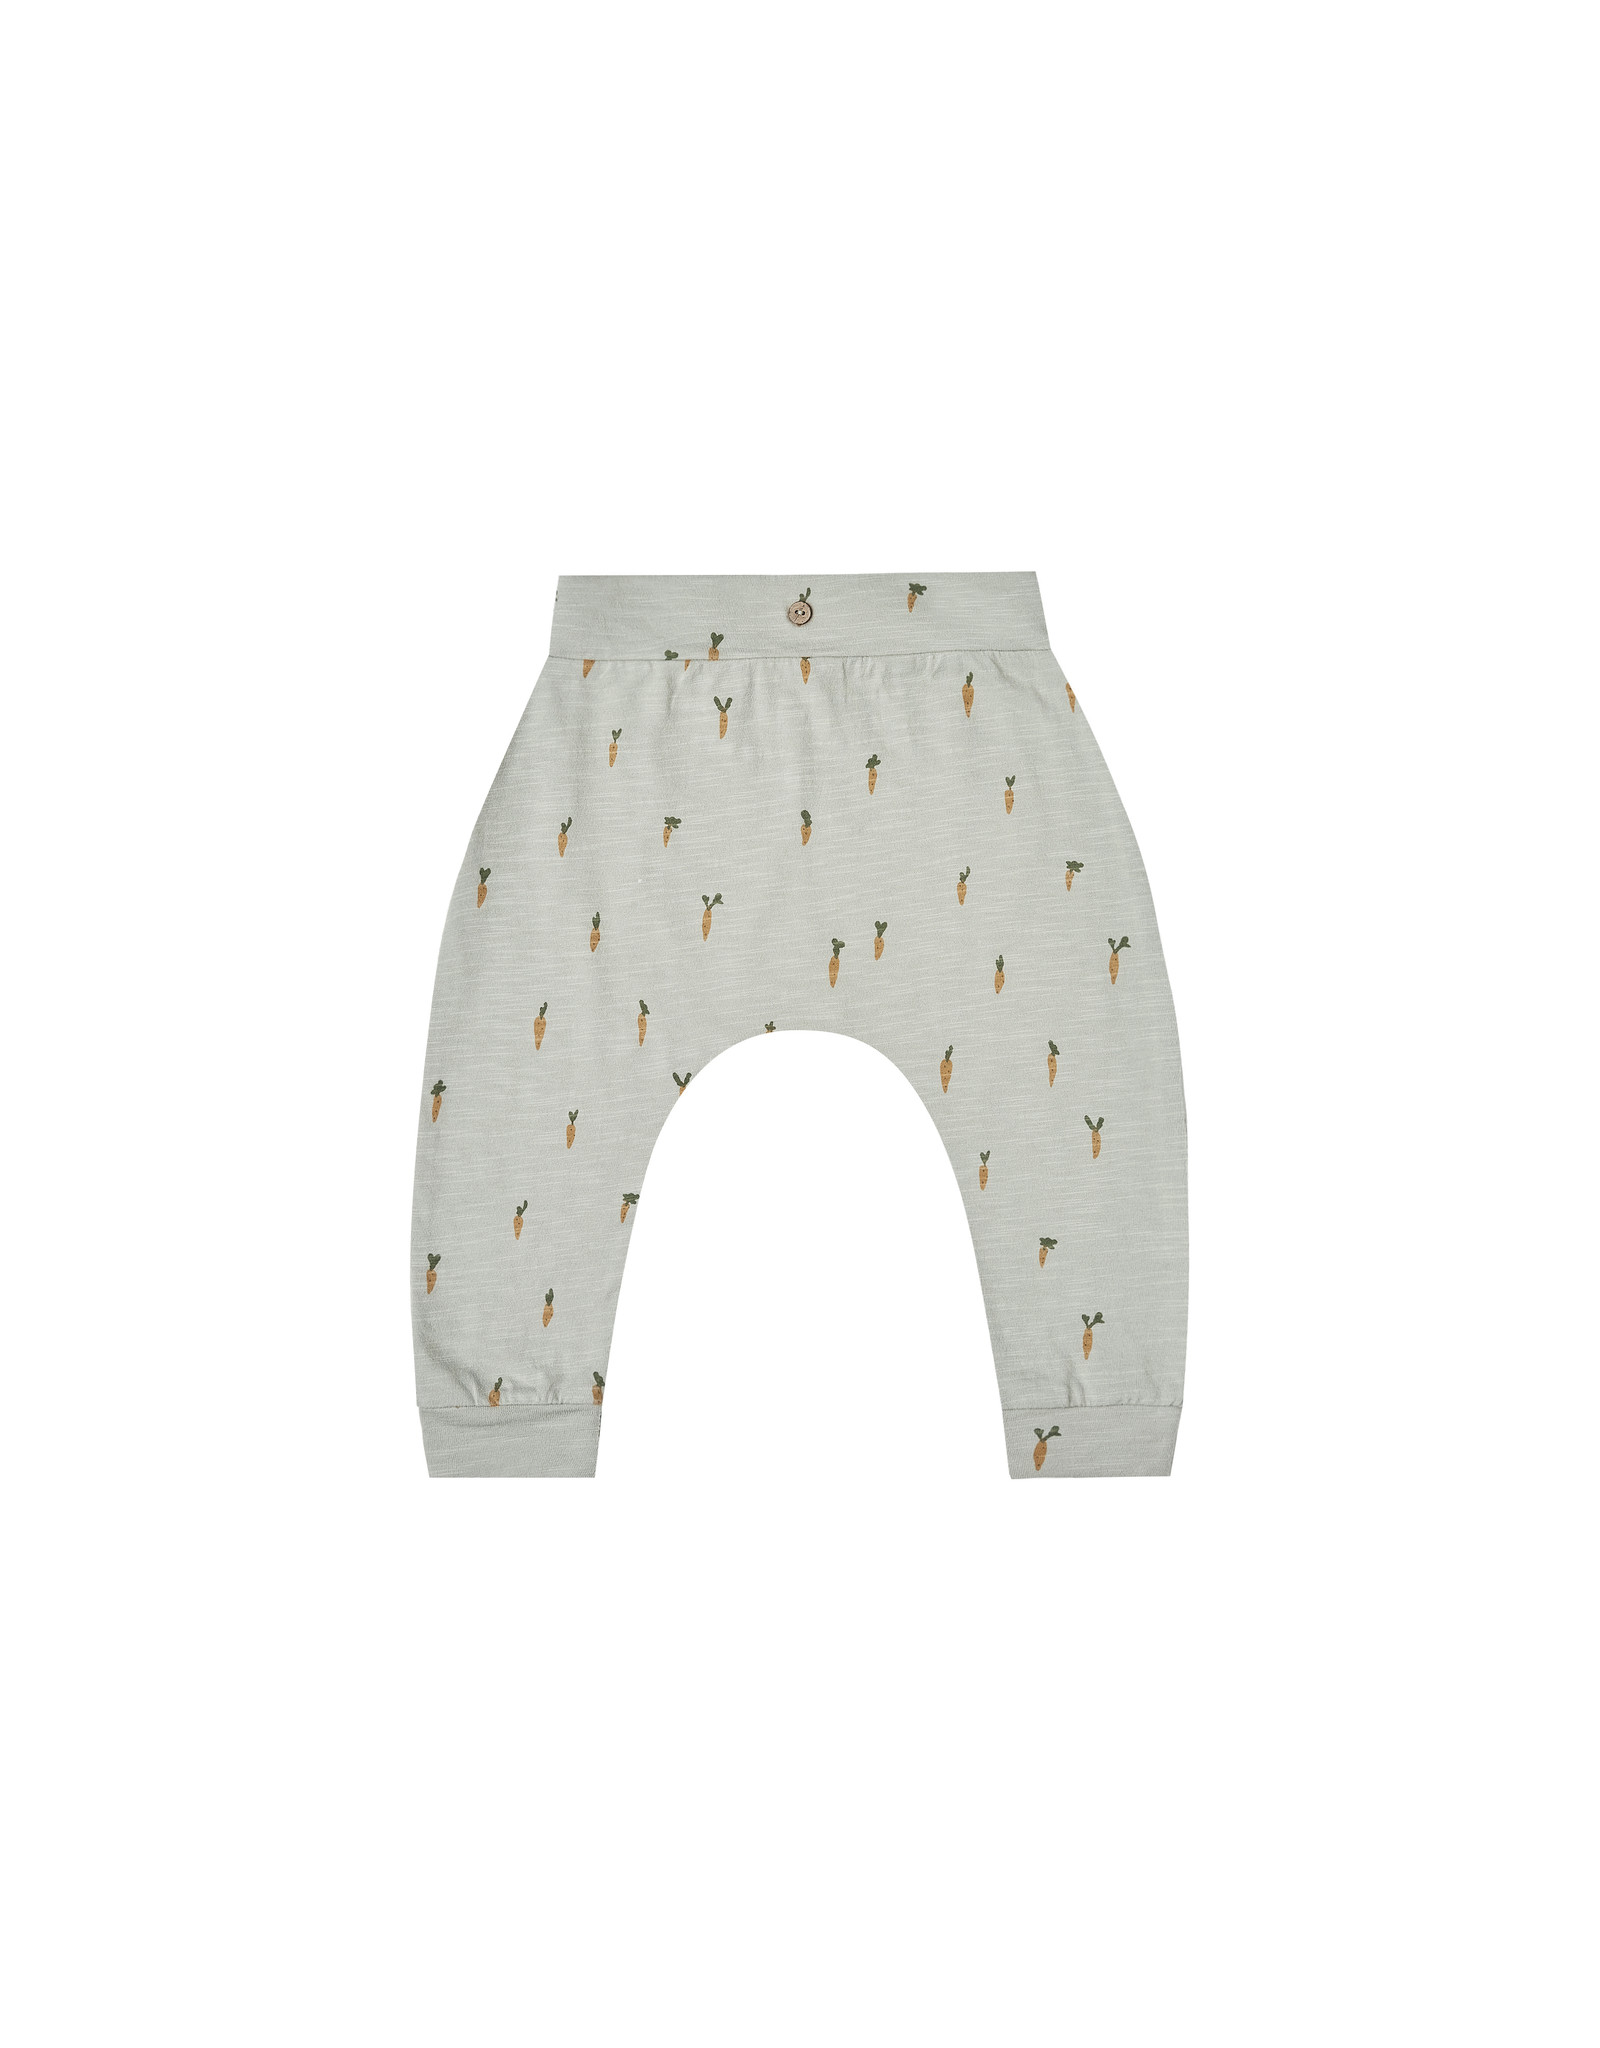 Rylee and Cru Carrots slouch pant